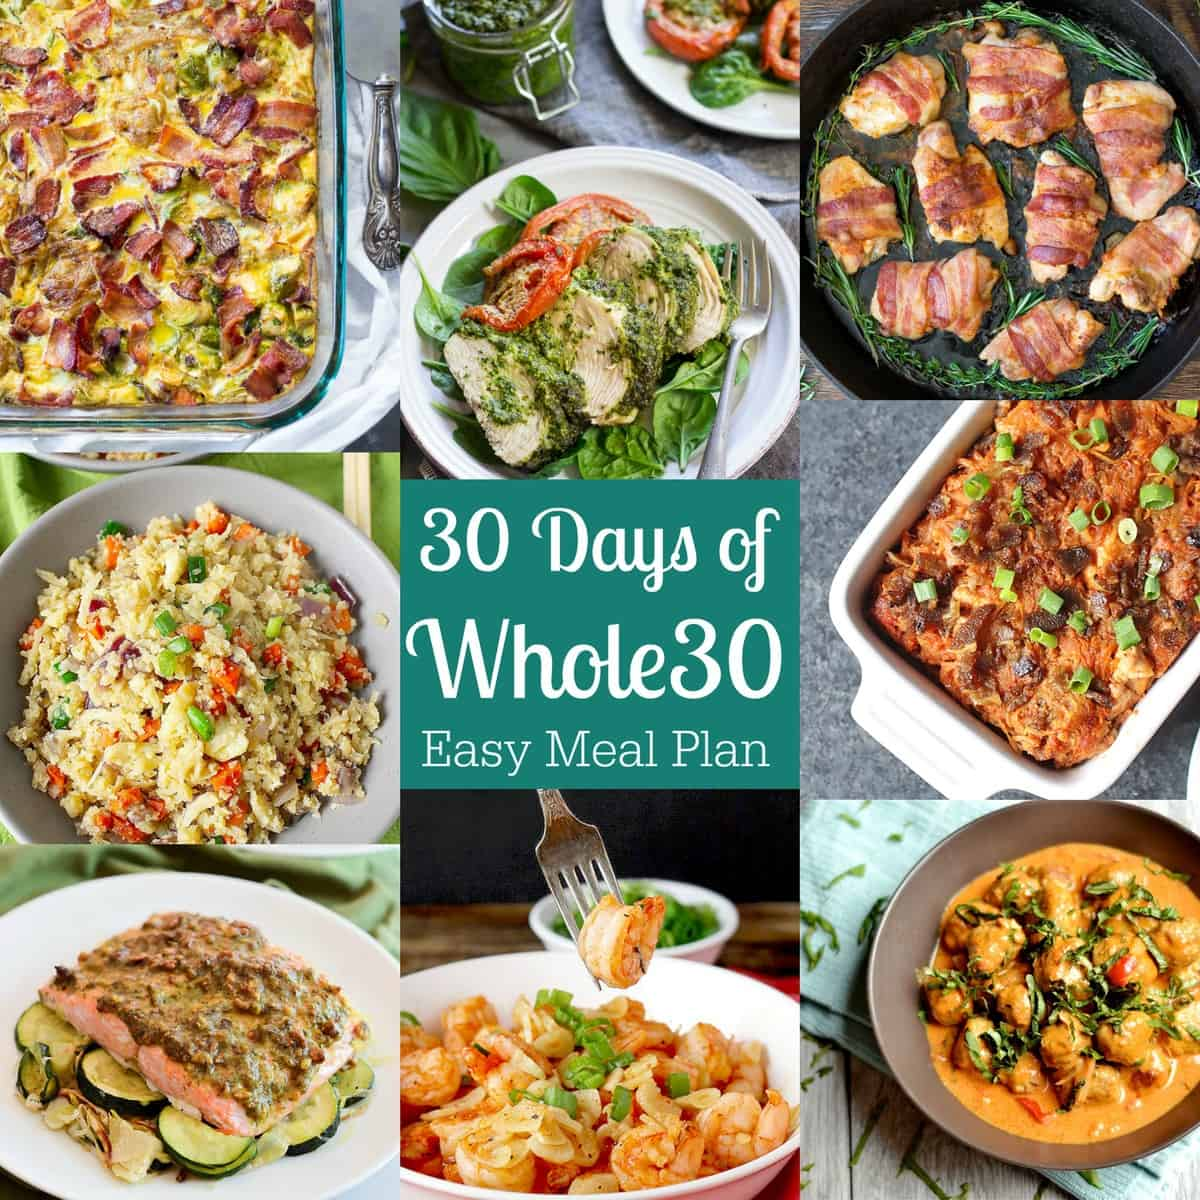 30 Days of Whole30 {Easy Meal Plan w/Recipes!}